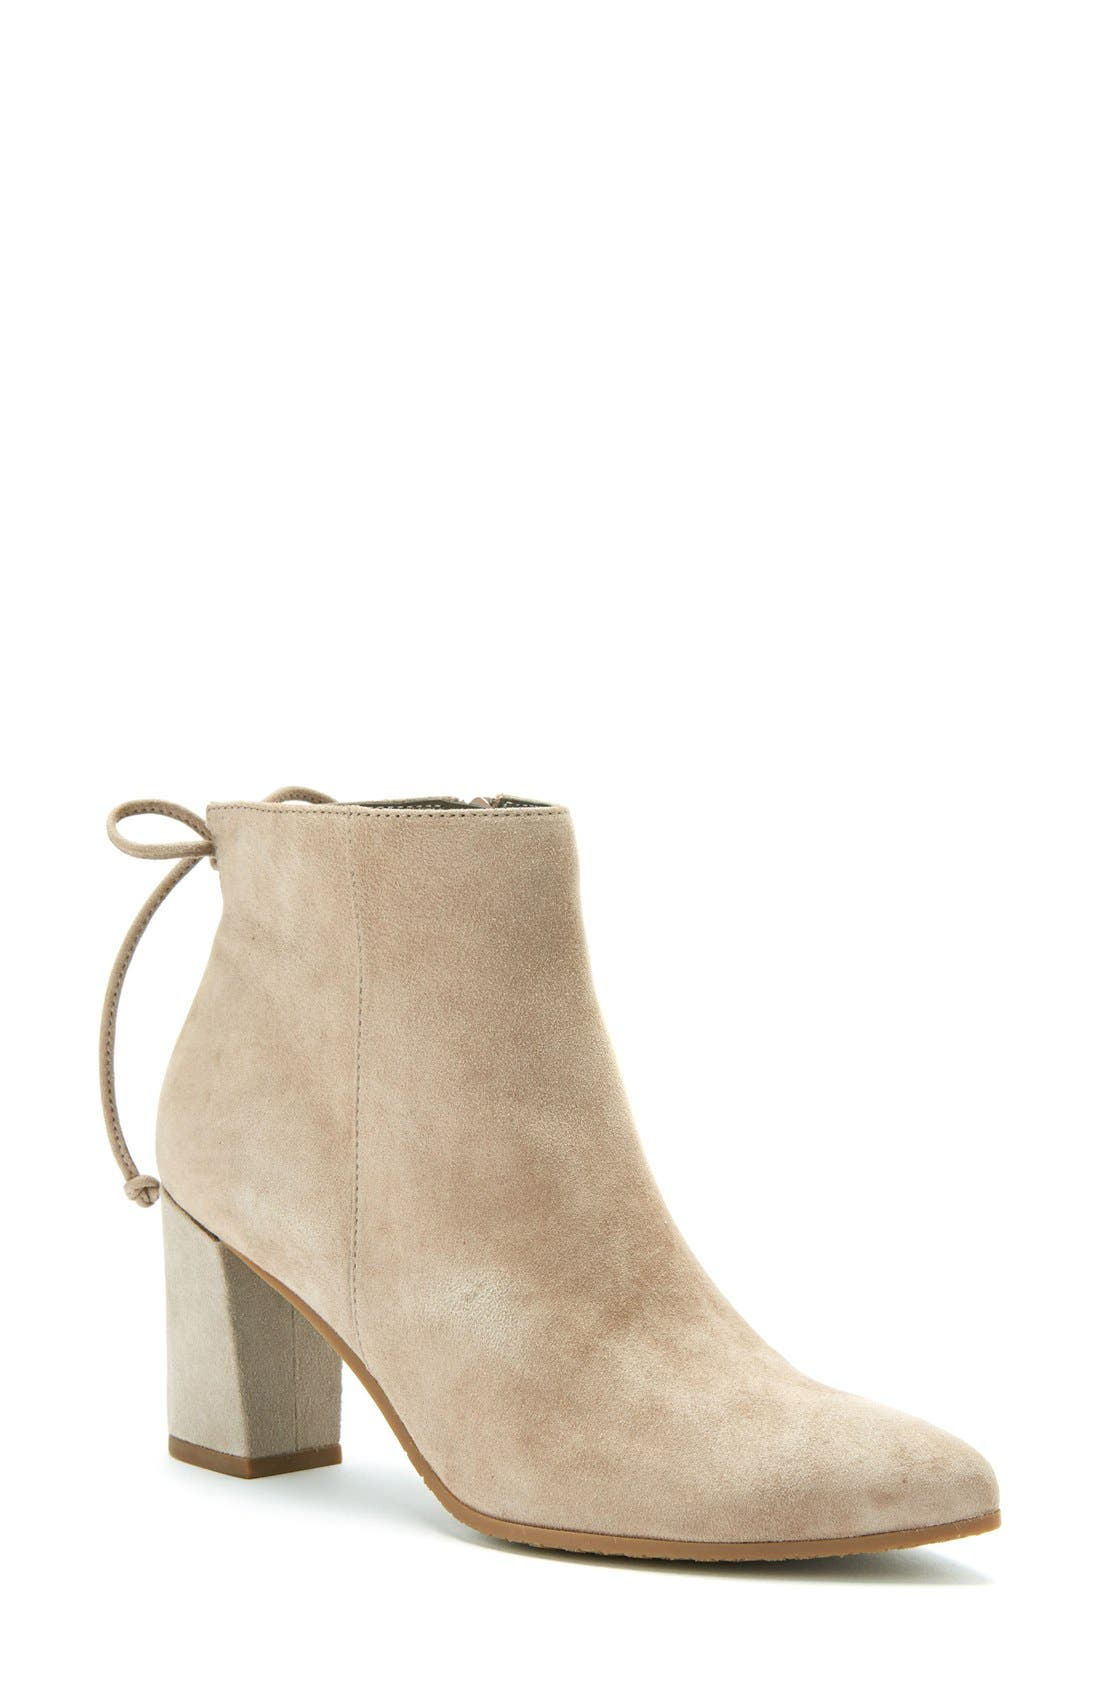 Tiana Waterproof Pointy Toe Bootie,                             Main thumbnail 1, color,                             Taupe Suede